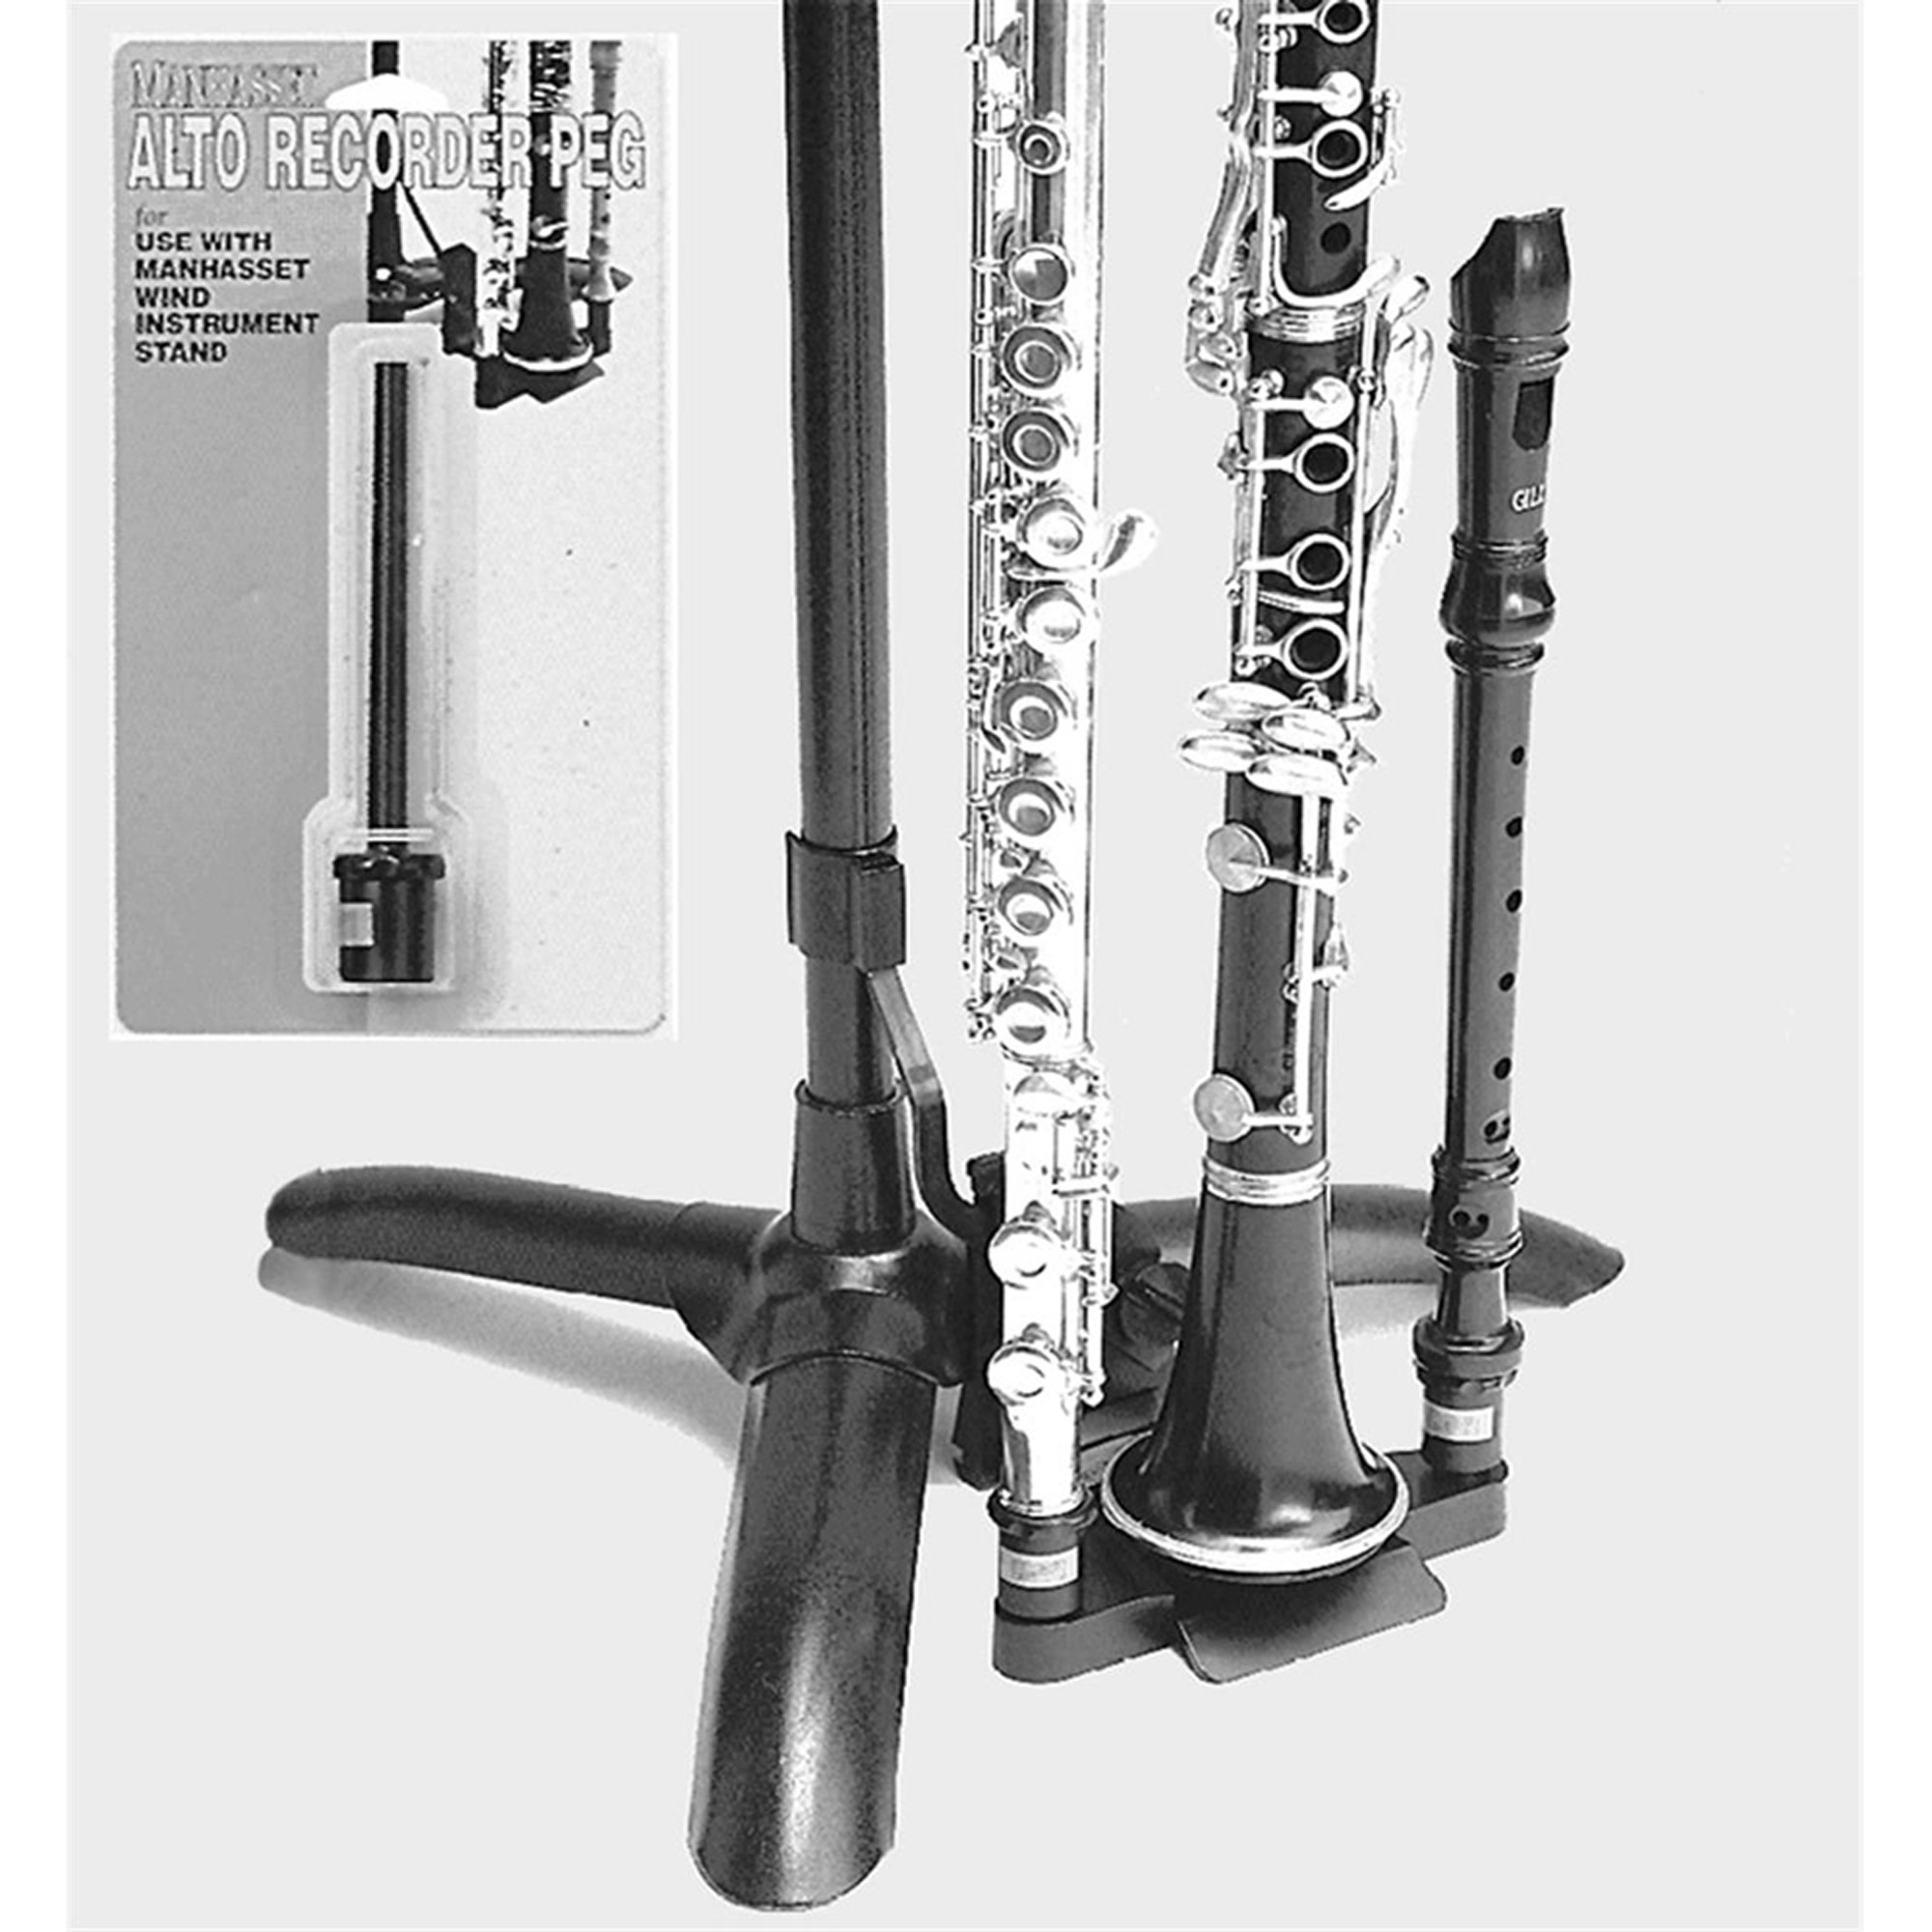 Manhasset #1460 Alto Recorder Peg, Music Stand Accessory by Manhasset